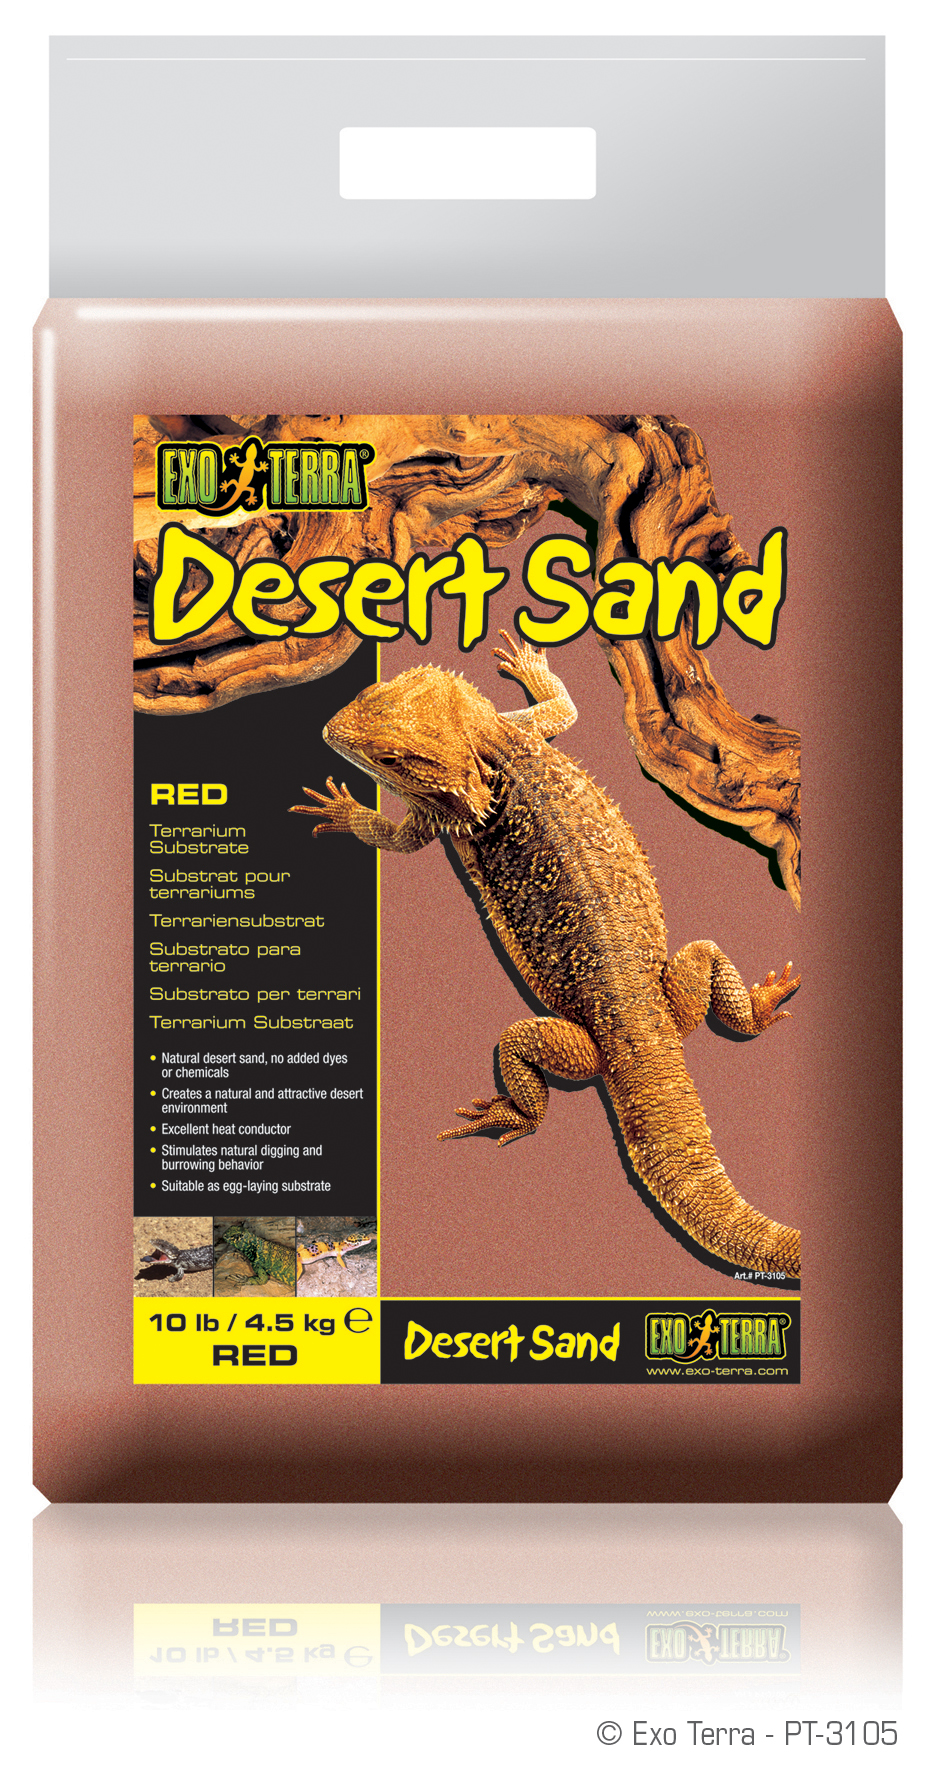 http://www.exo-terra.com/download/high_res/products/images/PT3105_Desert_Sand_Red_Packaging.jpg